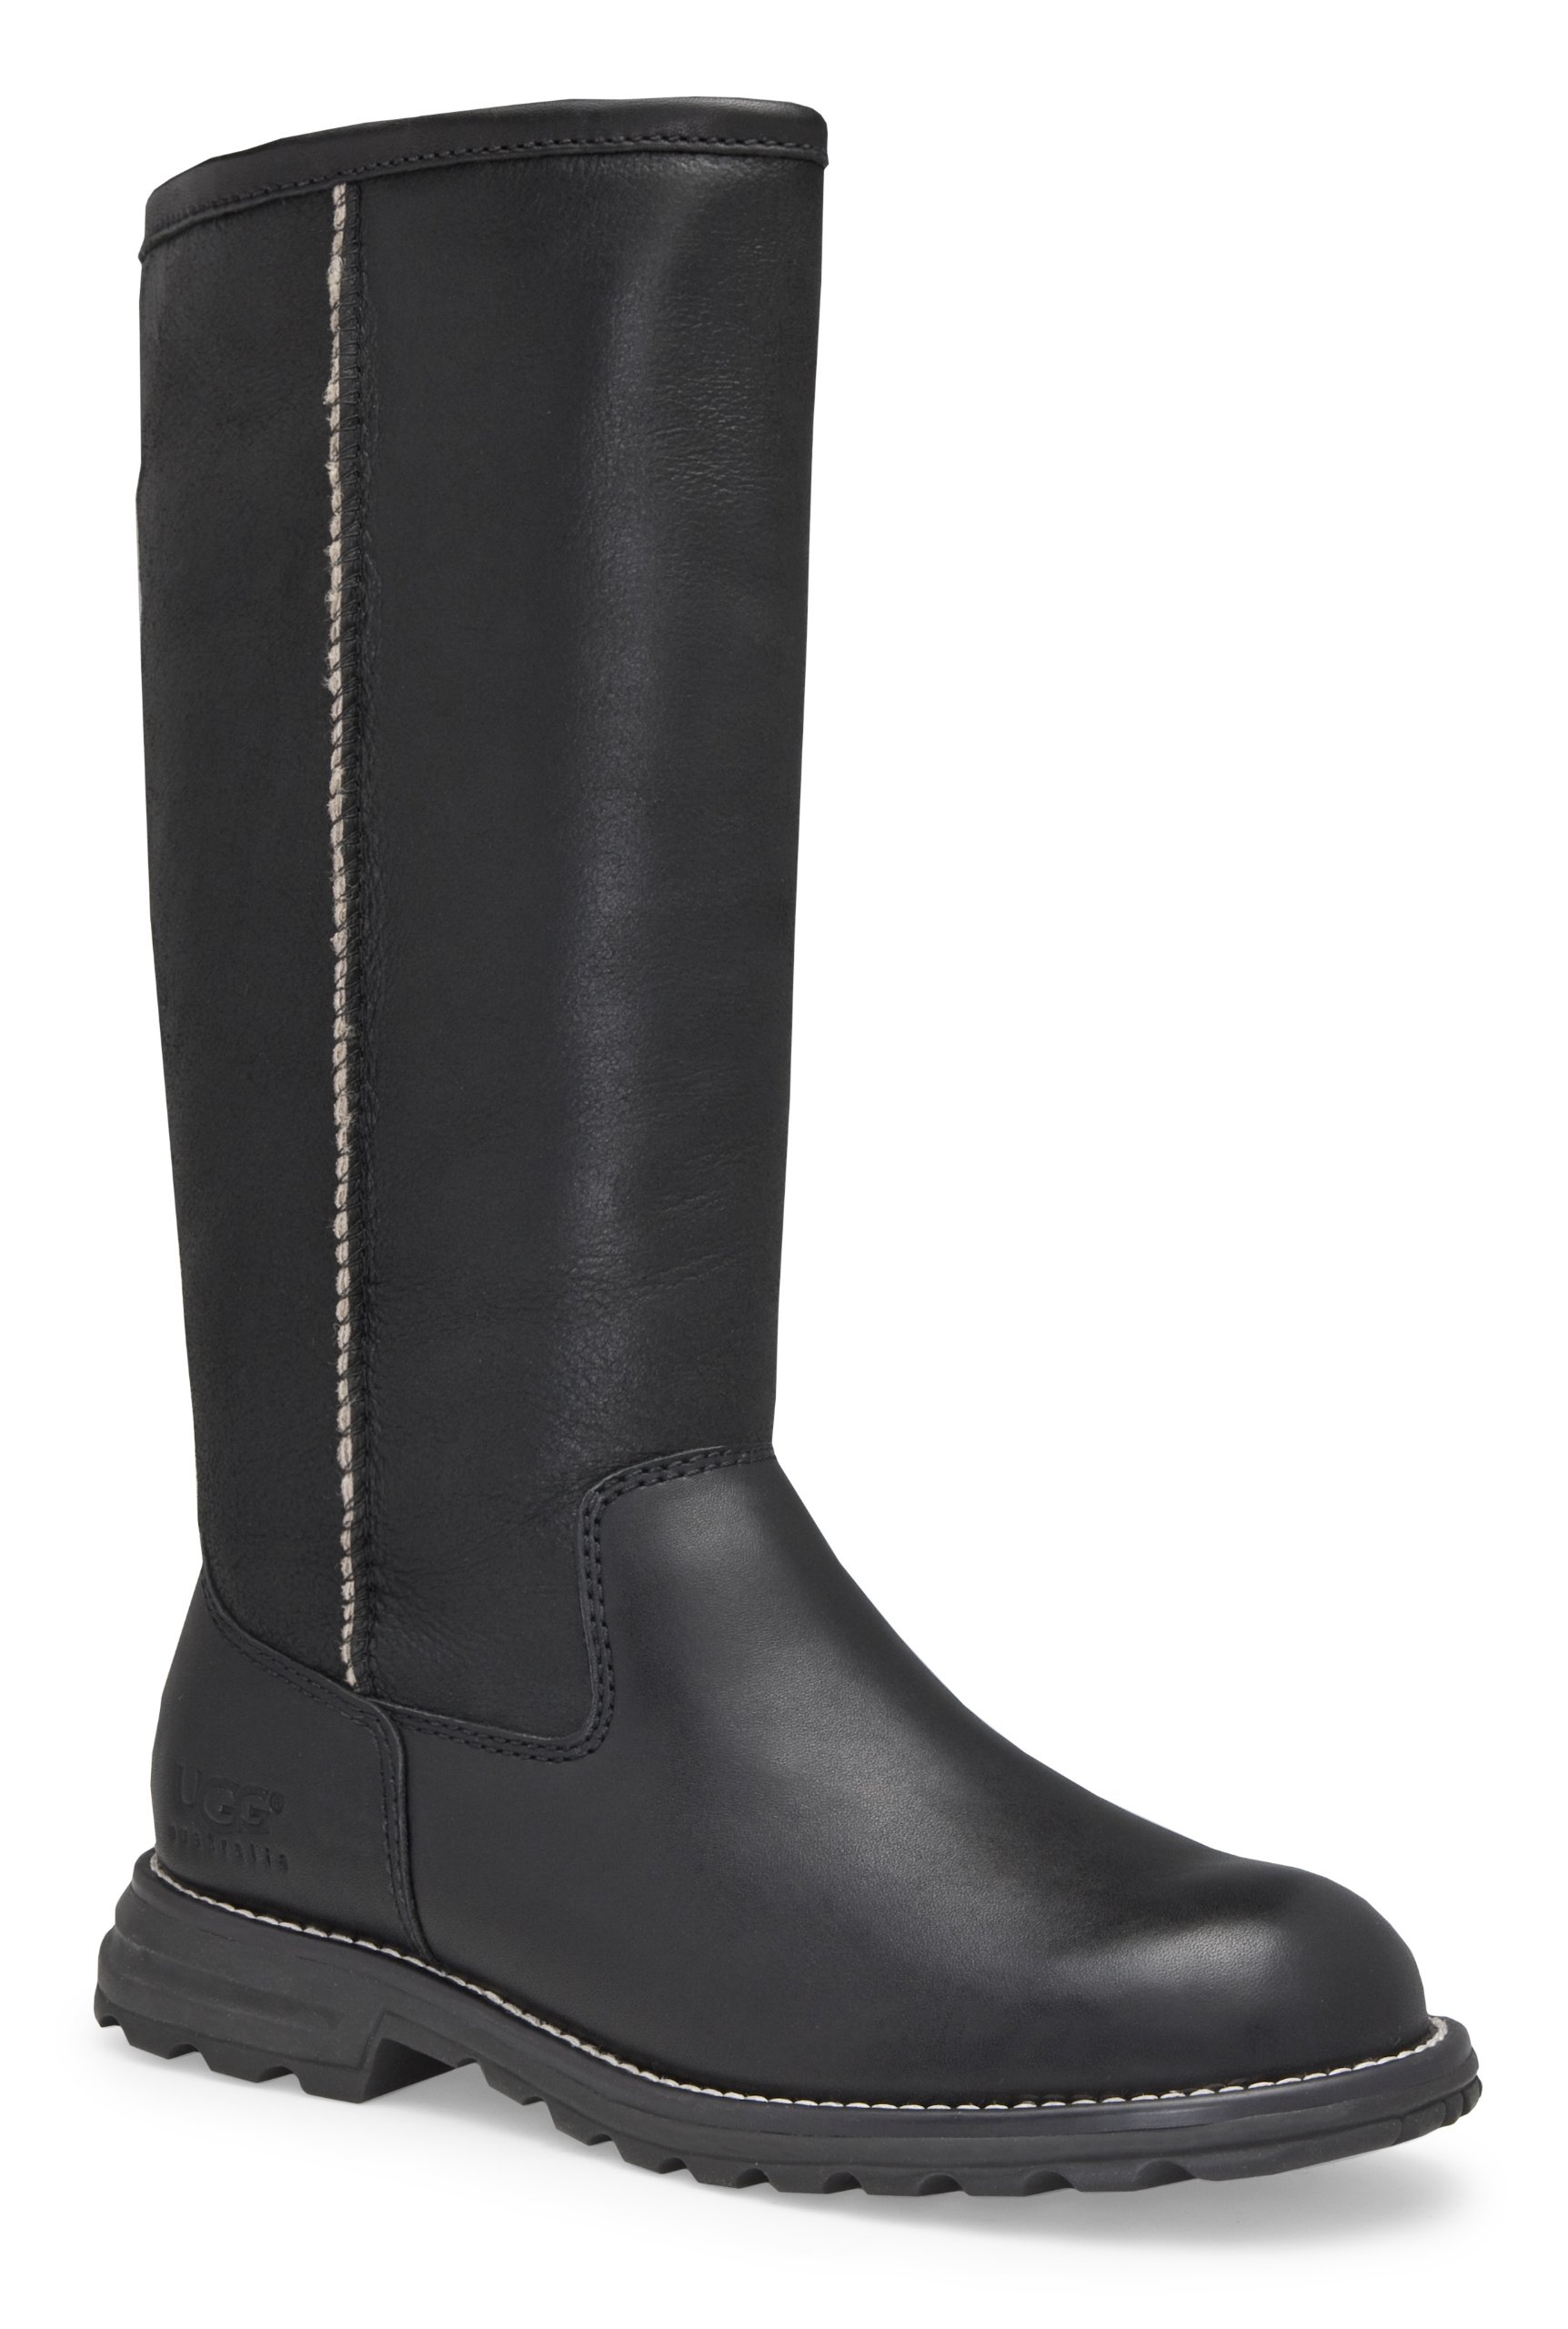 UGG Australia Womens Brooks Tall Boot Black Size 5